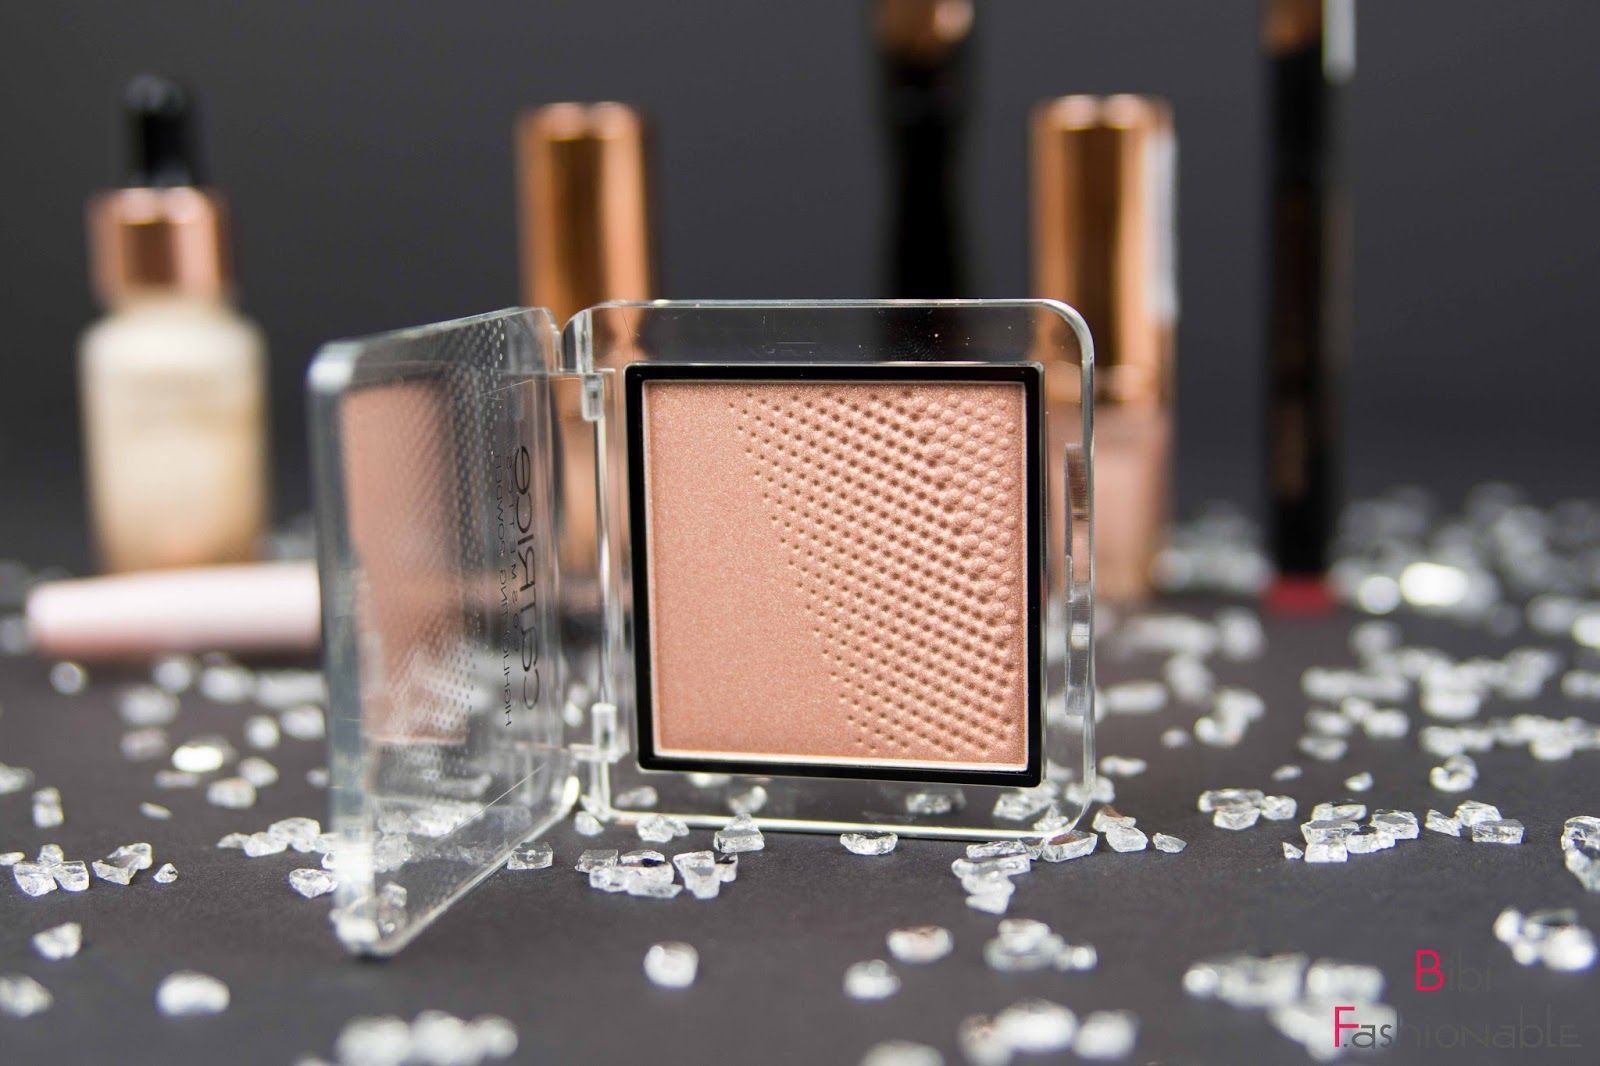 Catrice Pret a lumiere limited edition highlighting powder golden glow